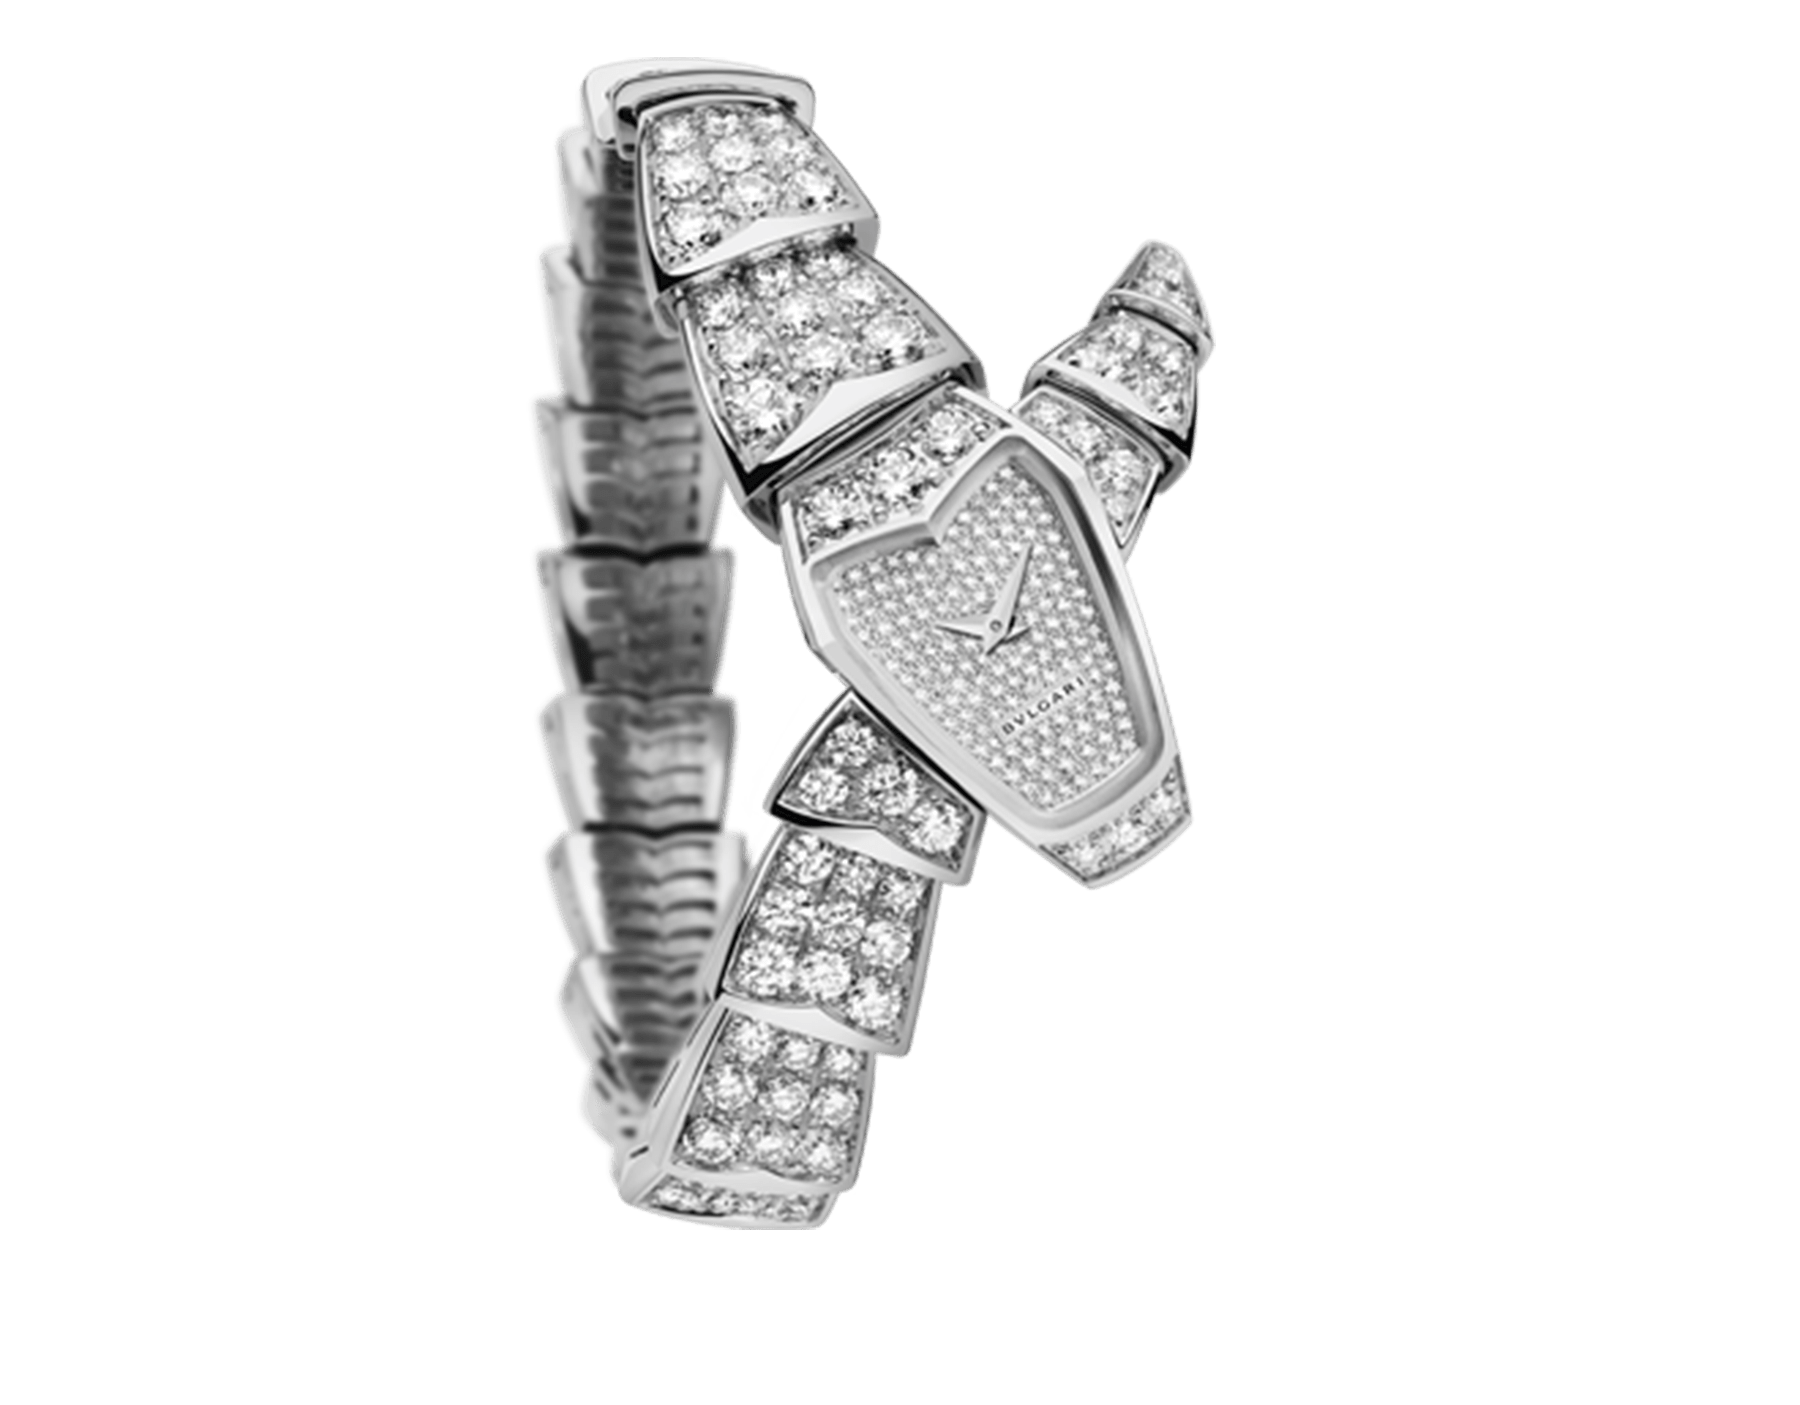 Serpenti Jewellery Watch in 18 kt white gold case and single spiral bracelet, both set with brilliant cut diamonds, and snow-set pavé diamond dial. 102367 image 1